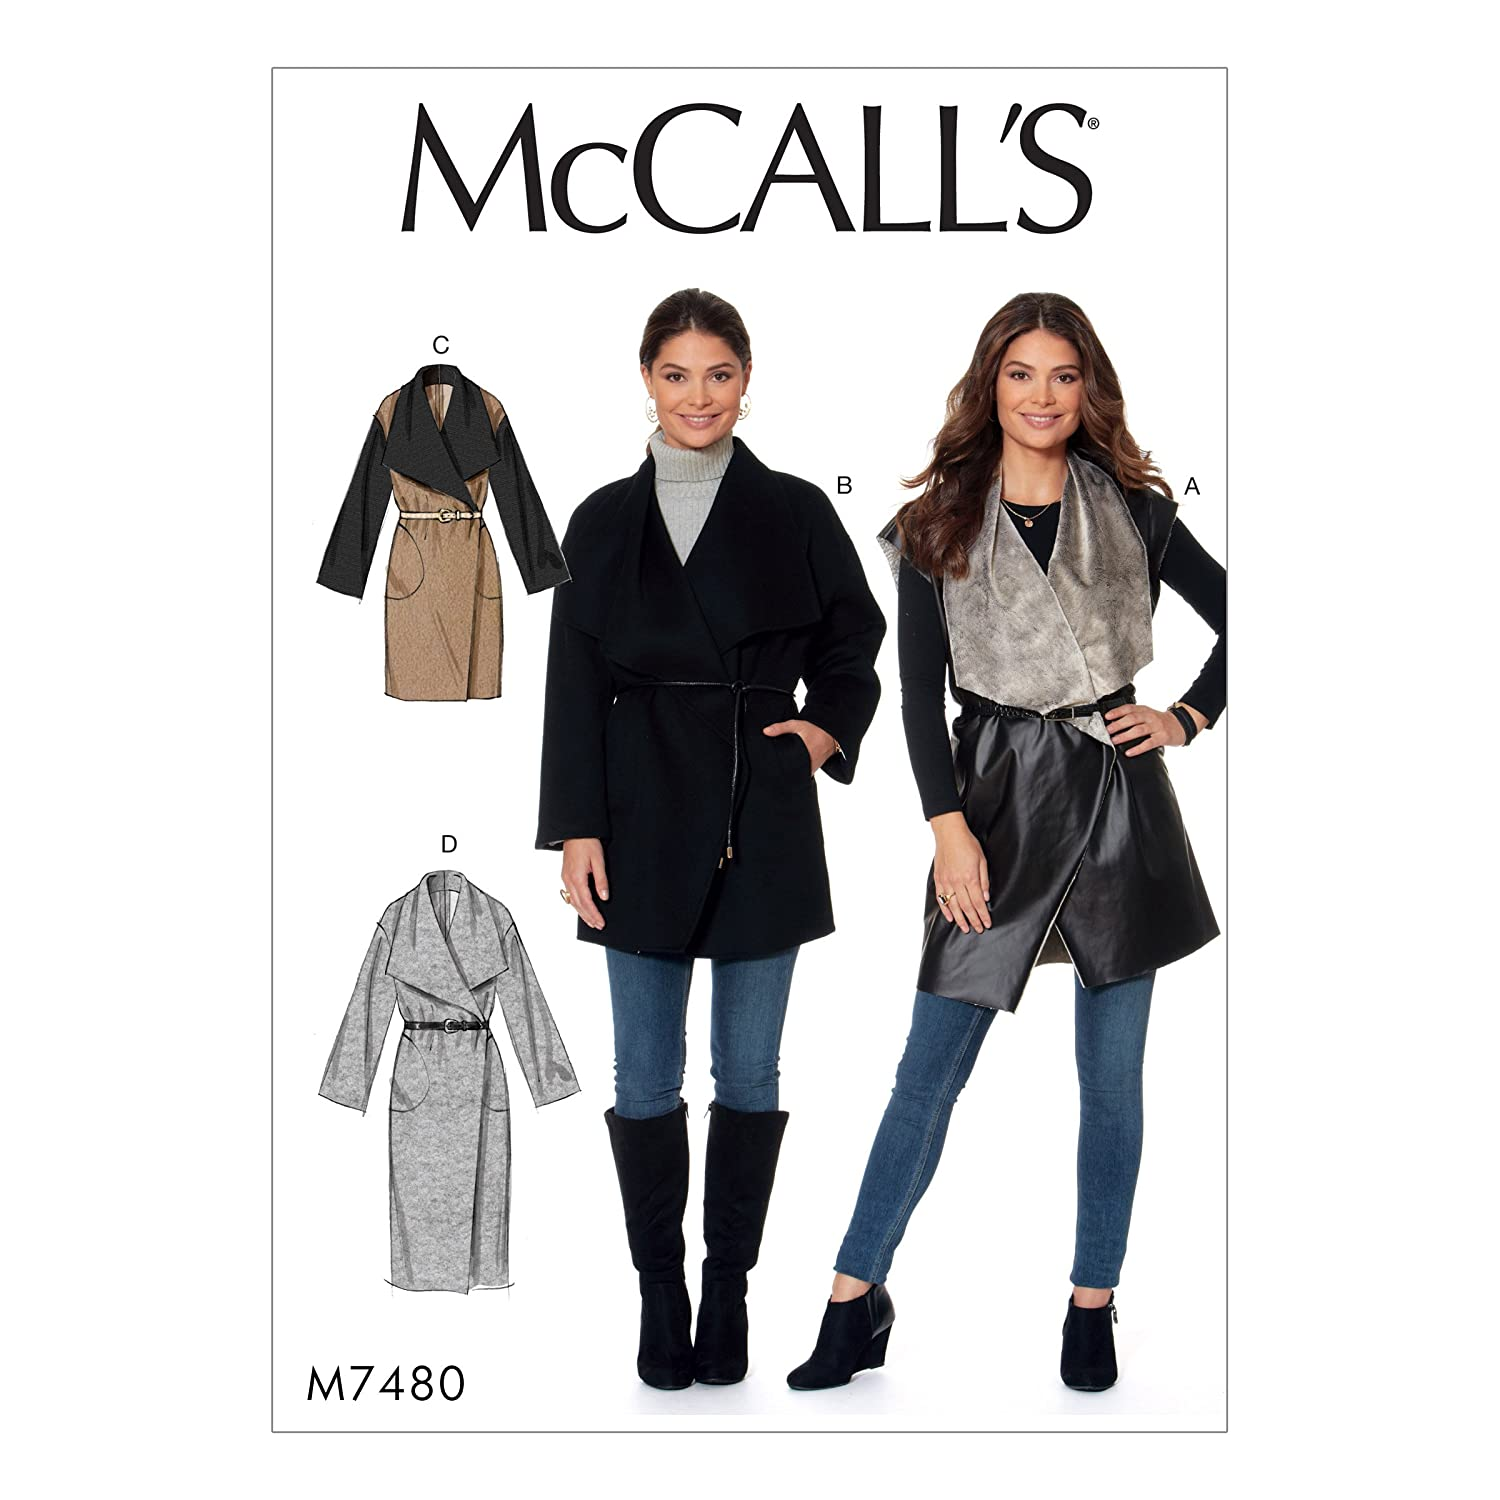 Amazon.com : McCalls 7480 (SIZE 4-14) Misses Shawl Collar, Wrap Vest and Coats : Sports & Outdoors